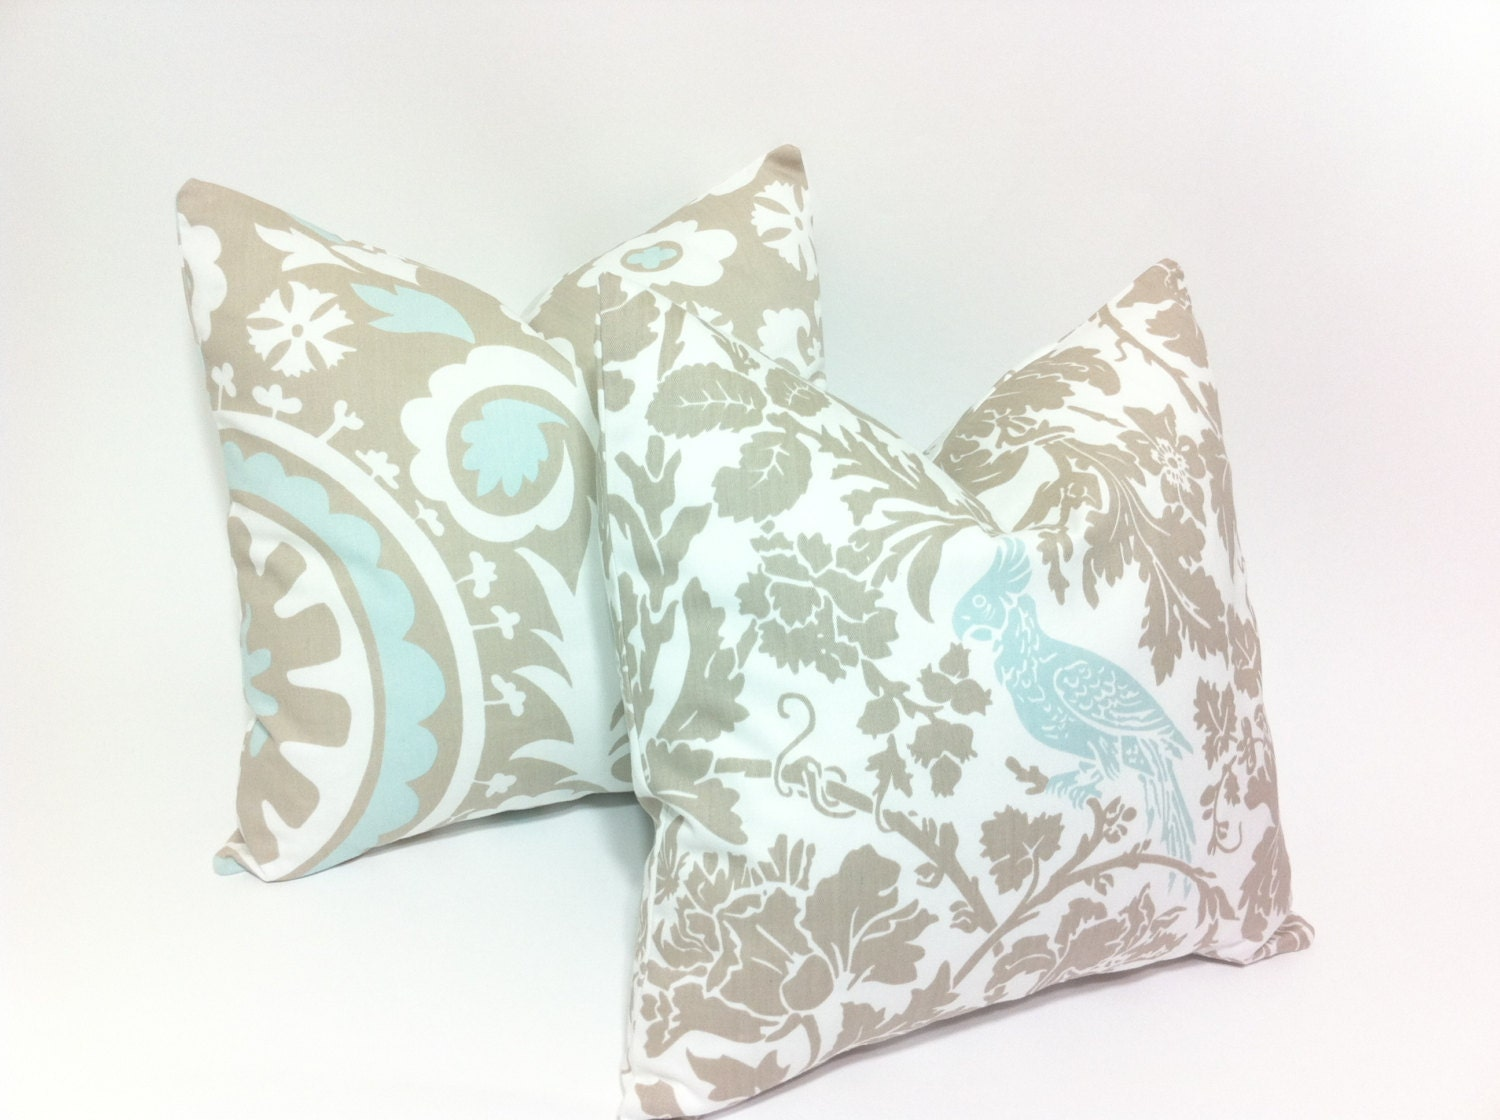 Throw Pillows Taupe : Light Blue and Taupe Decorative Throw Pillow Covers Bird